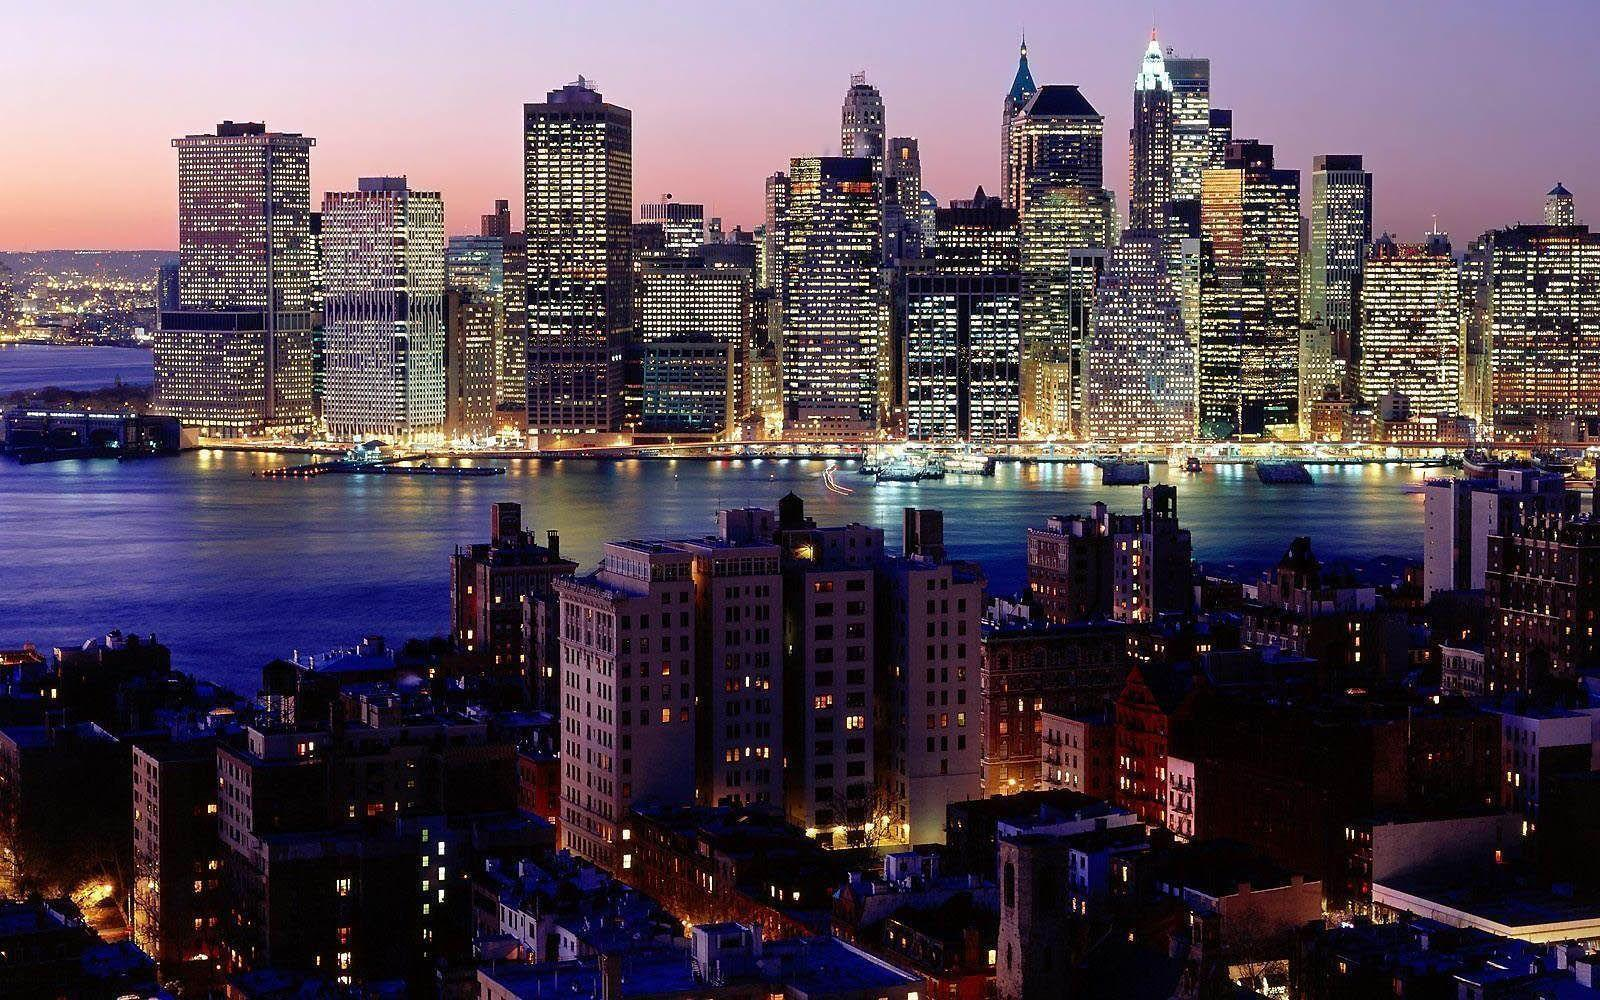 New York City Wallpaper Widescreen – HD Wallpapers image | High ...